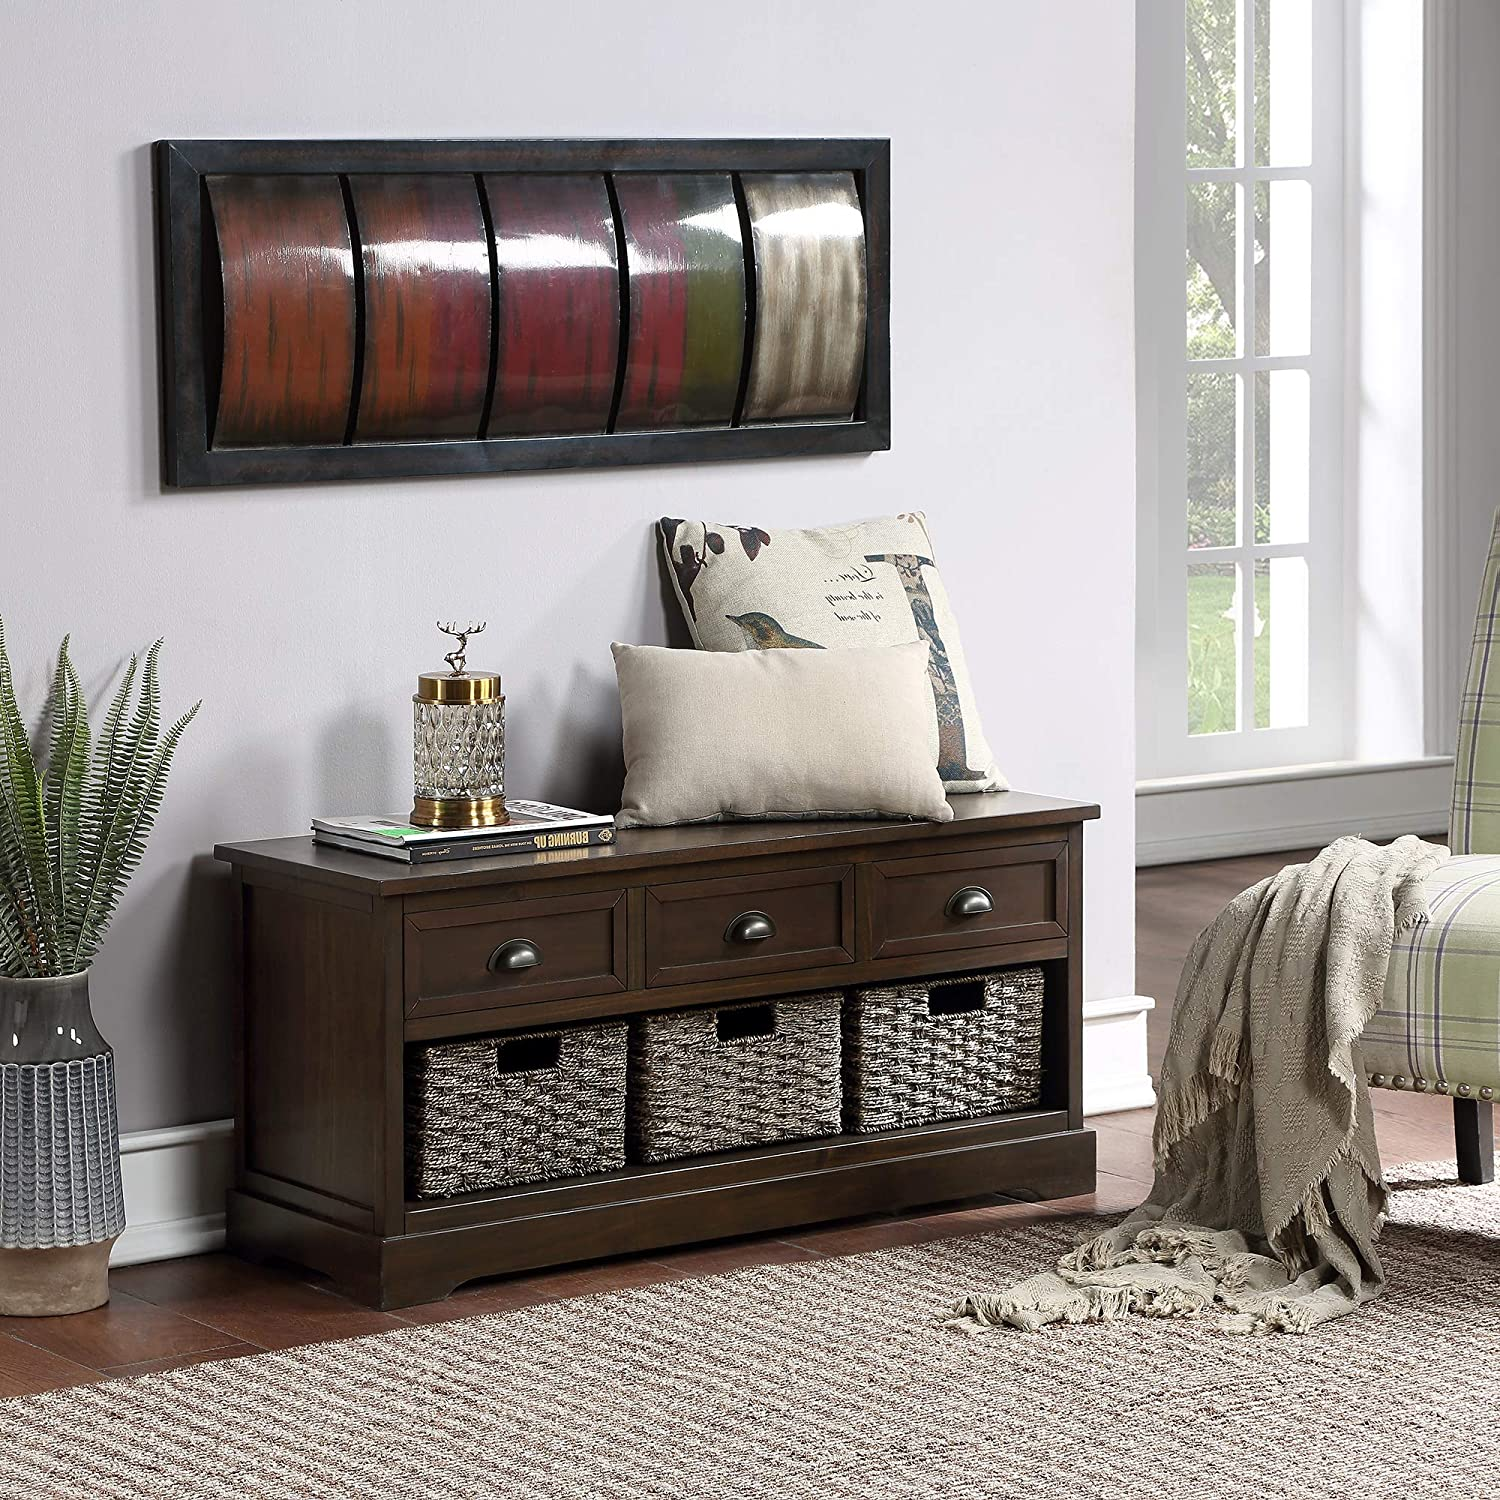 Spasm price Homes Collection Wood Excellent Storage Shoe Bench wi